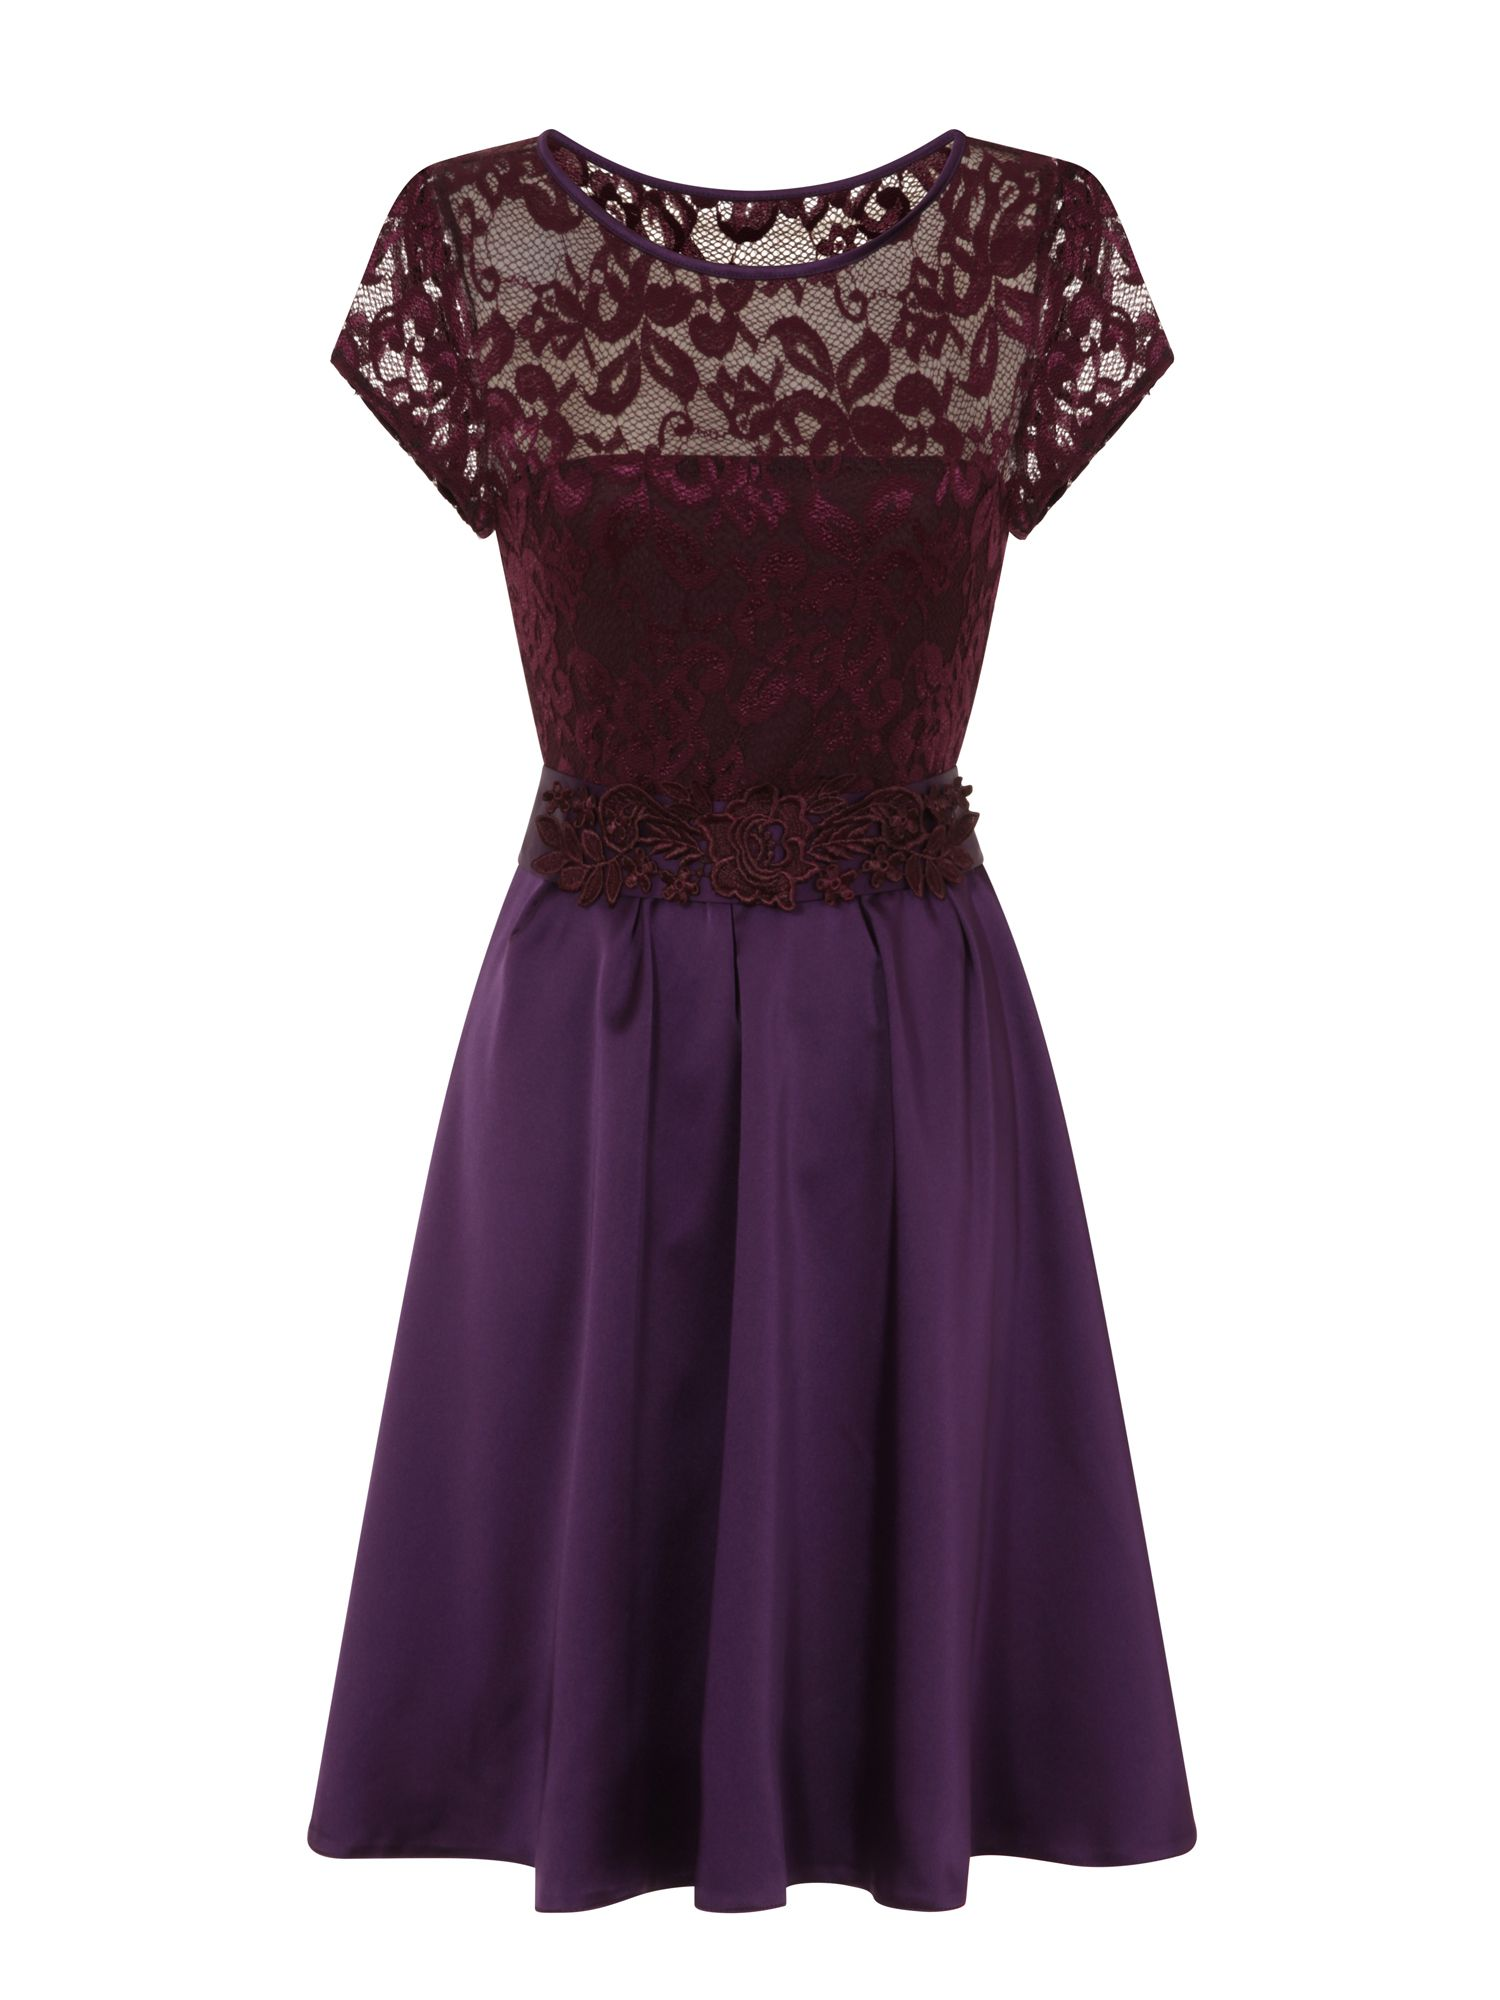 HotSquash Lace Ana Party Dress in Clever Fabric, Purple